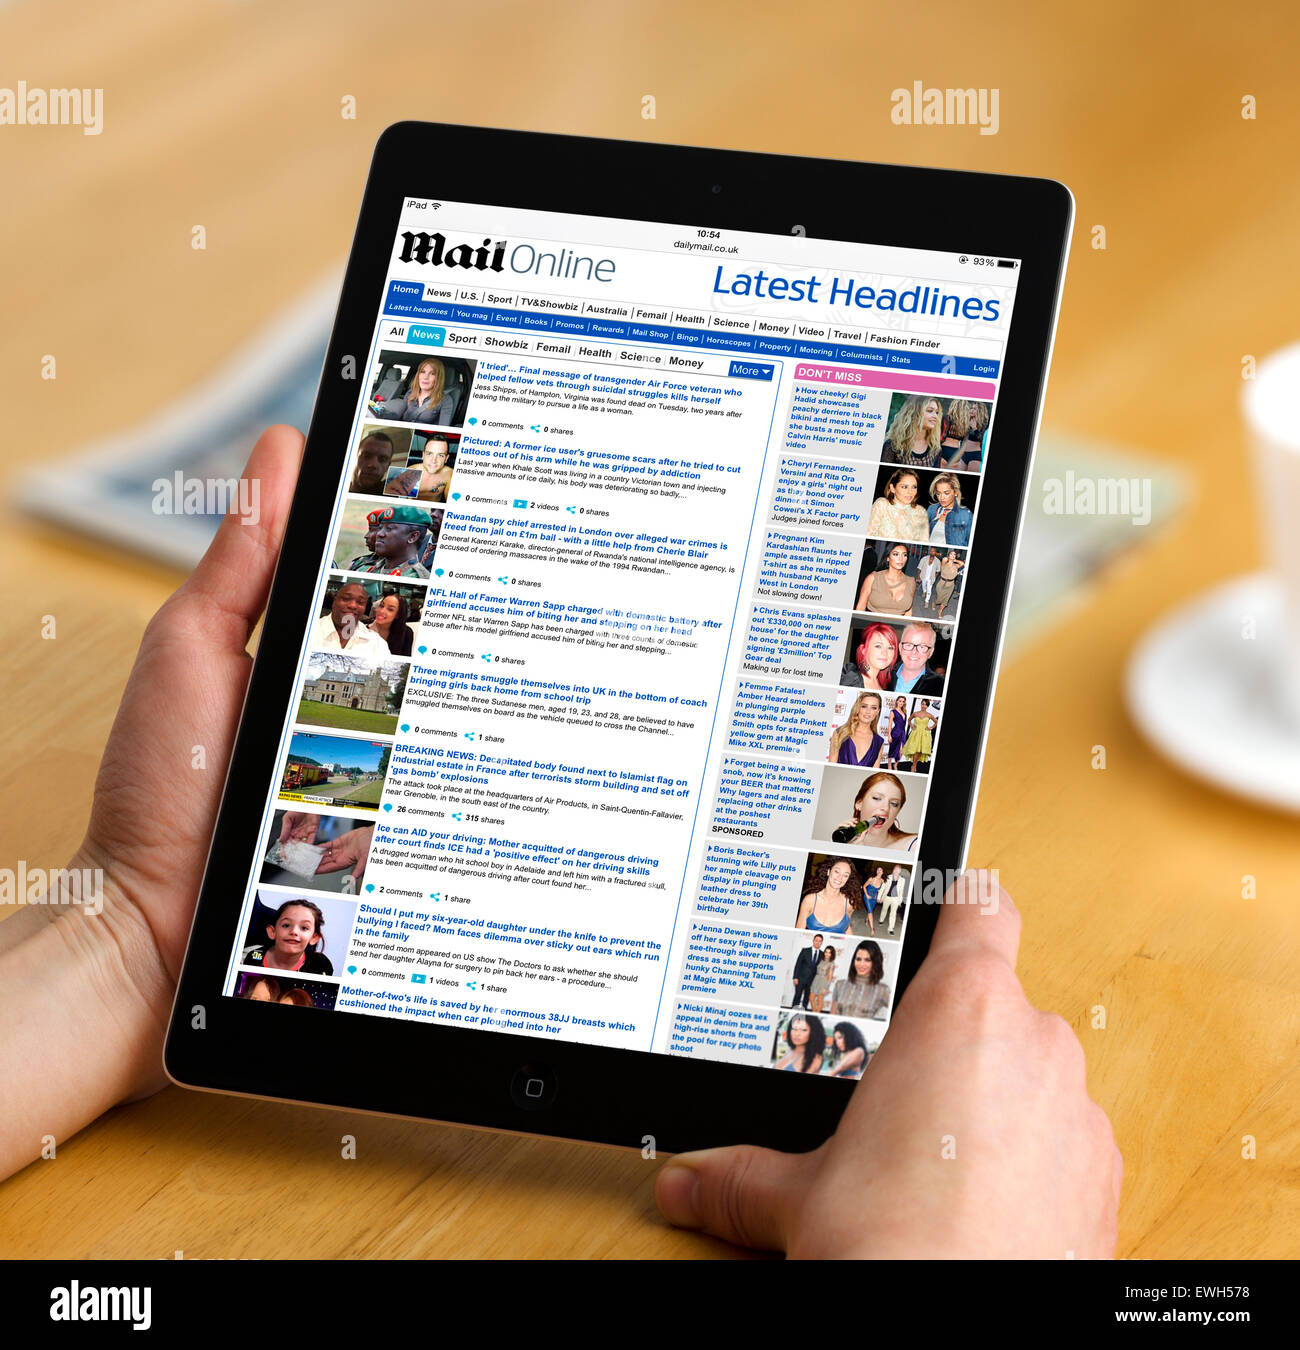 Reading the Mail Online, the internet edition of the Daily Mail newspaper, on an Apple iPad Air - Stock Image